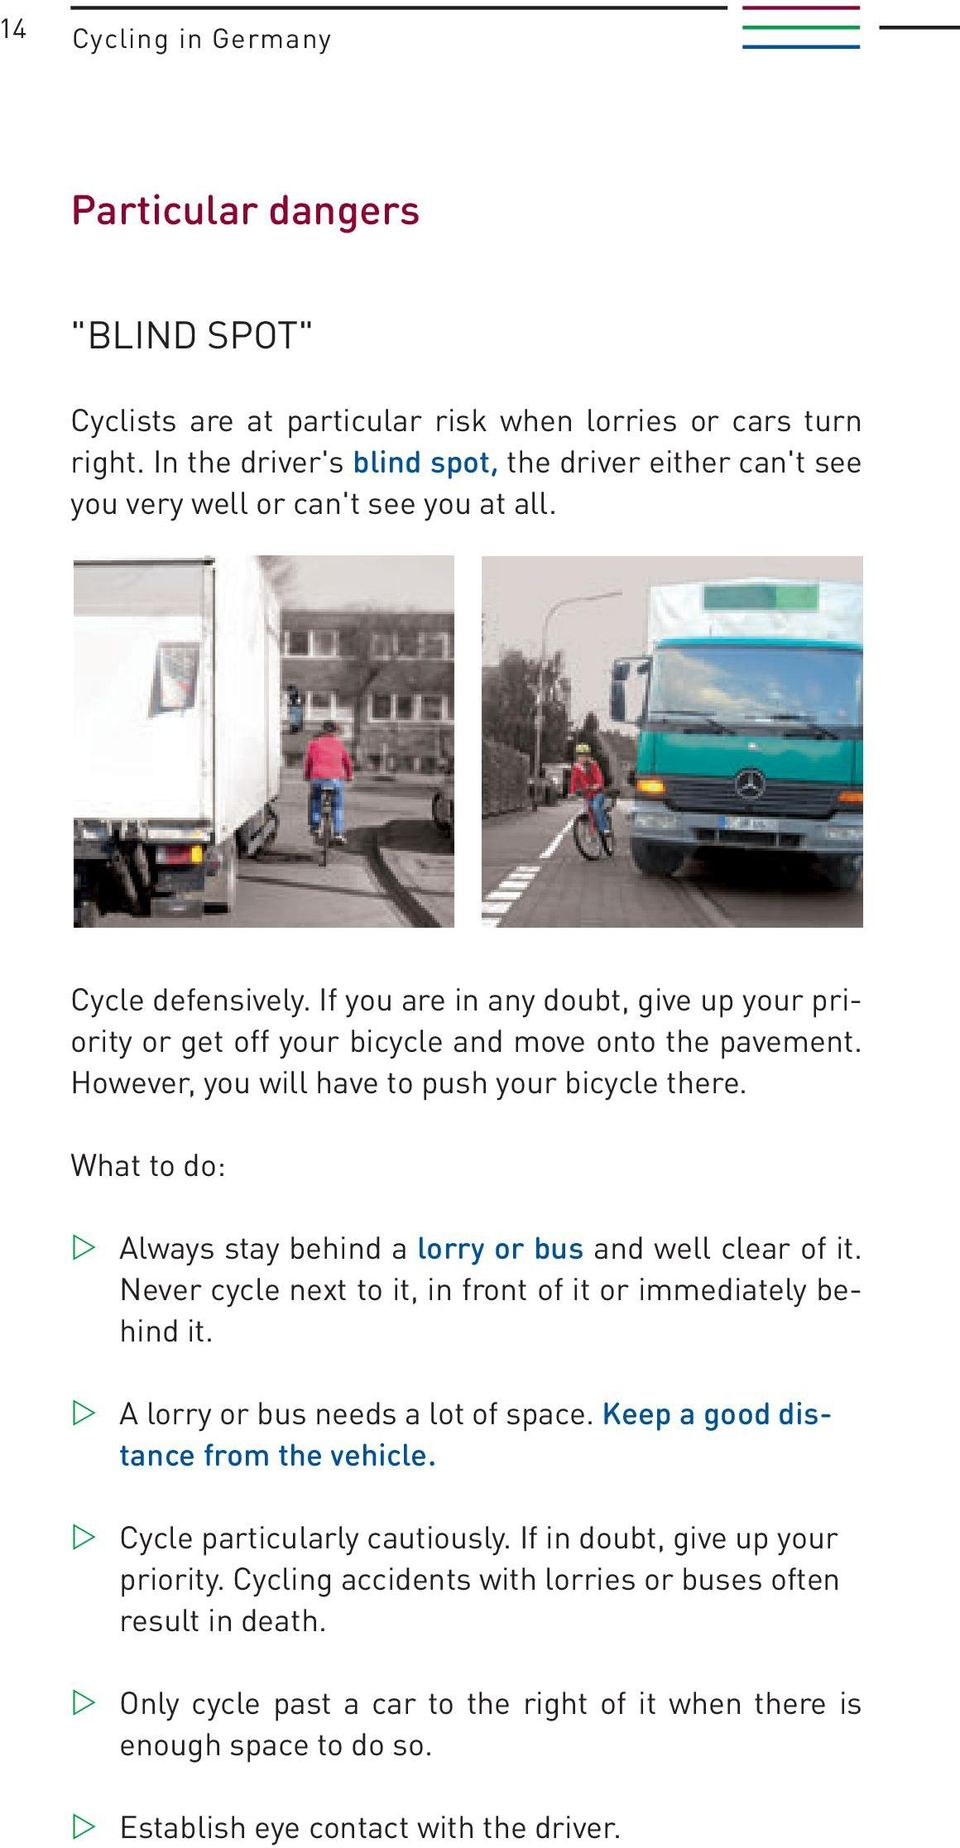 If you are in any doubt, give up your priority or get off your bicycle and move onto the pavement. However, you will have to push your bicycle there.